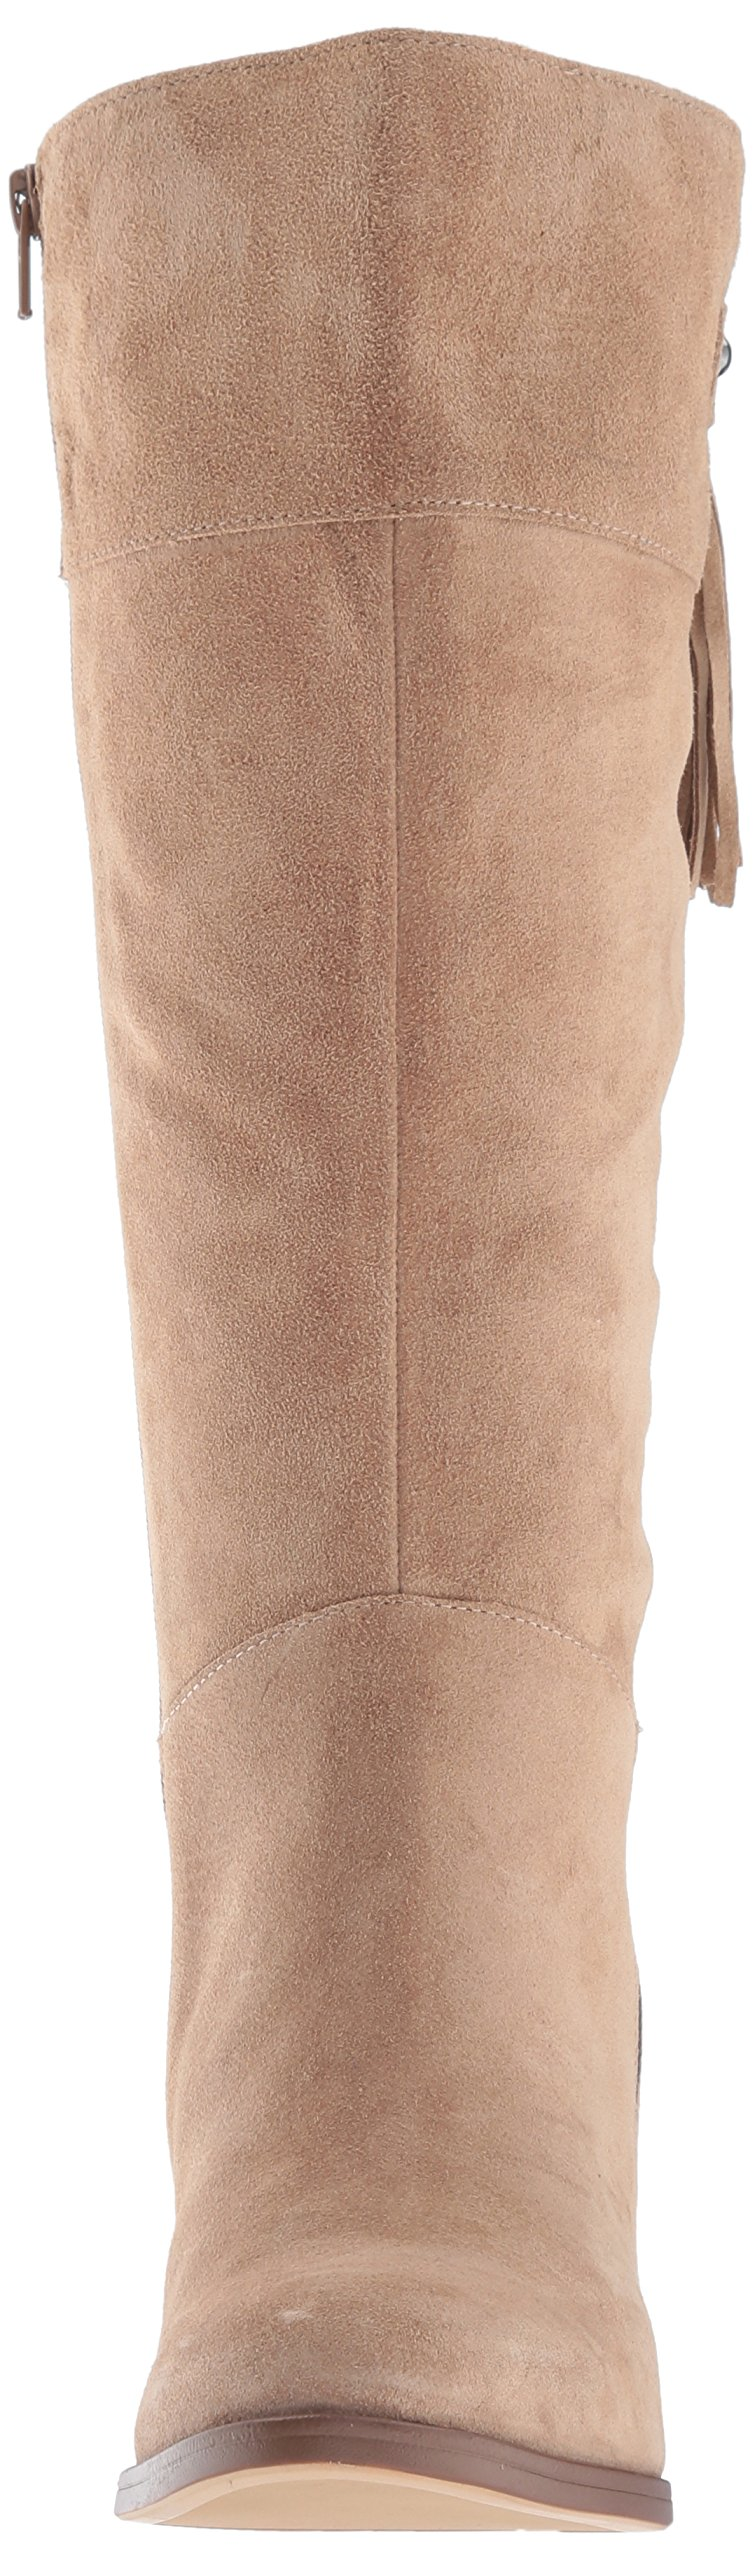 Naturalizer Women's Demi Wc Riding Boot, Oatmeal, 9 M US by Naturalizer (Image #4)